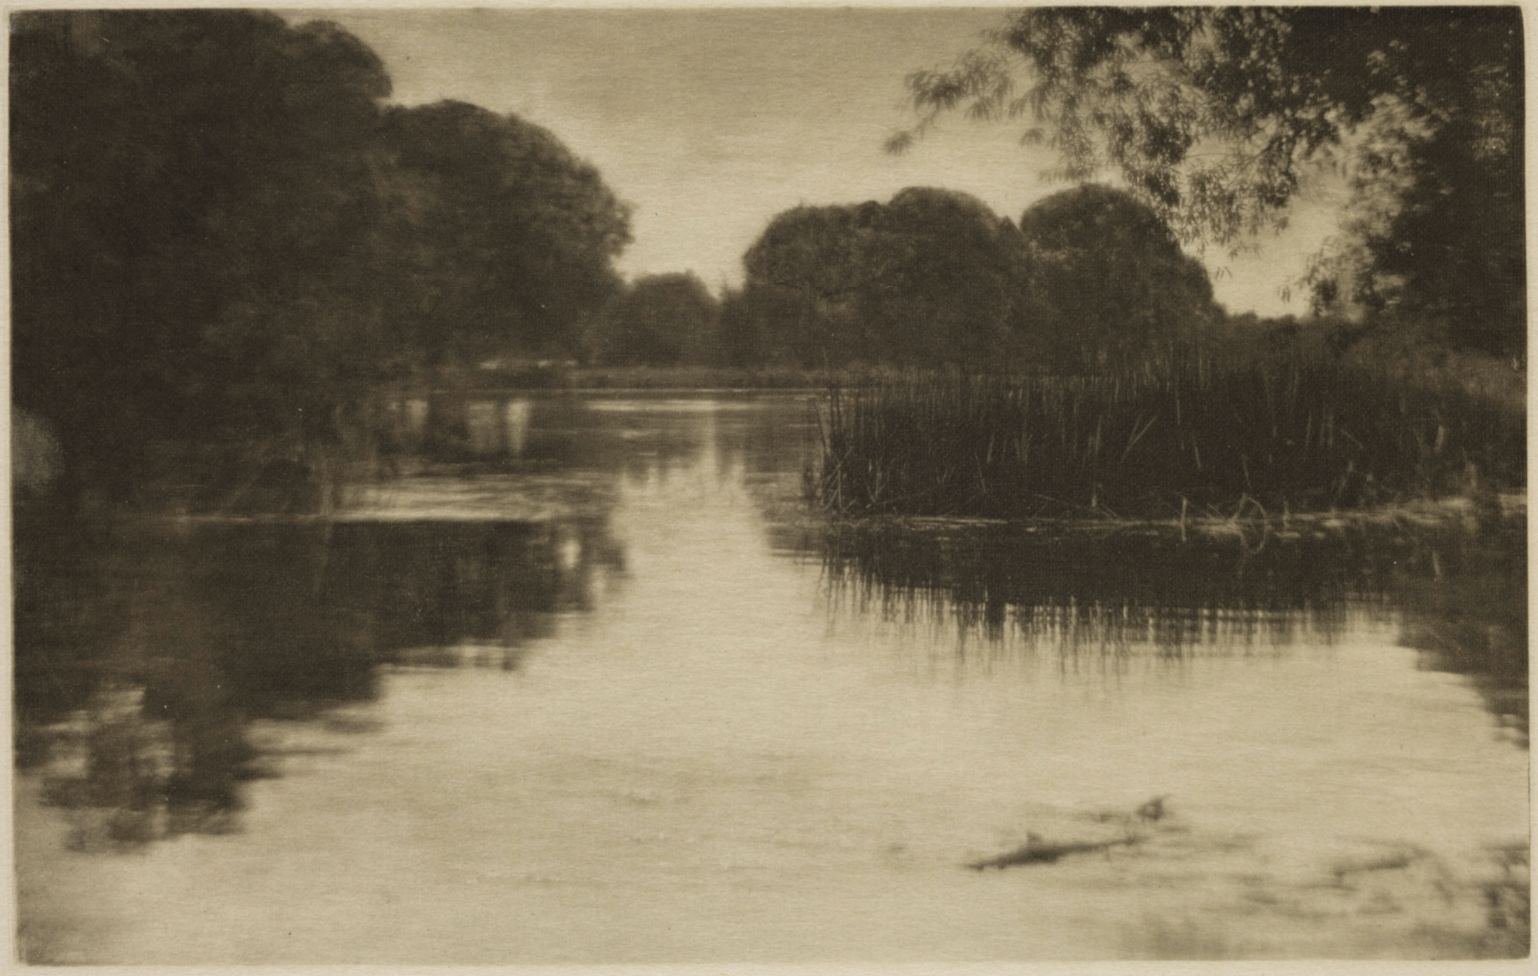 Fotó: J. Craig Annan: Bolney Backwater, 1910 (megjelent: Camera Work 32.; 1910)